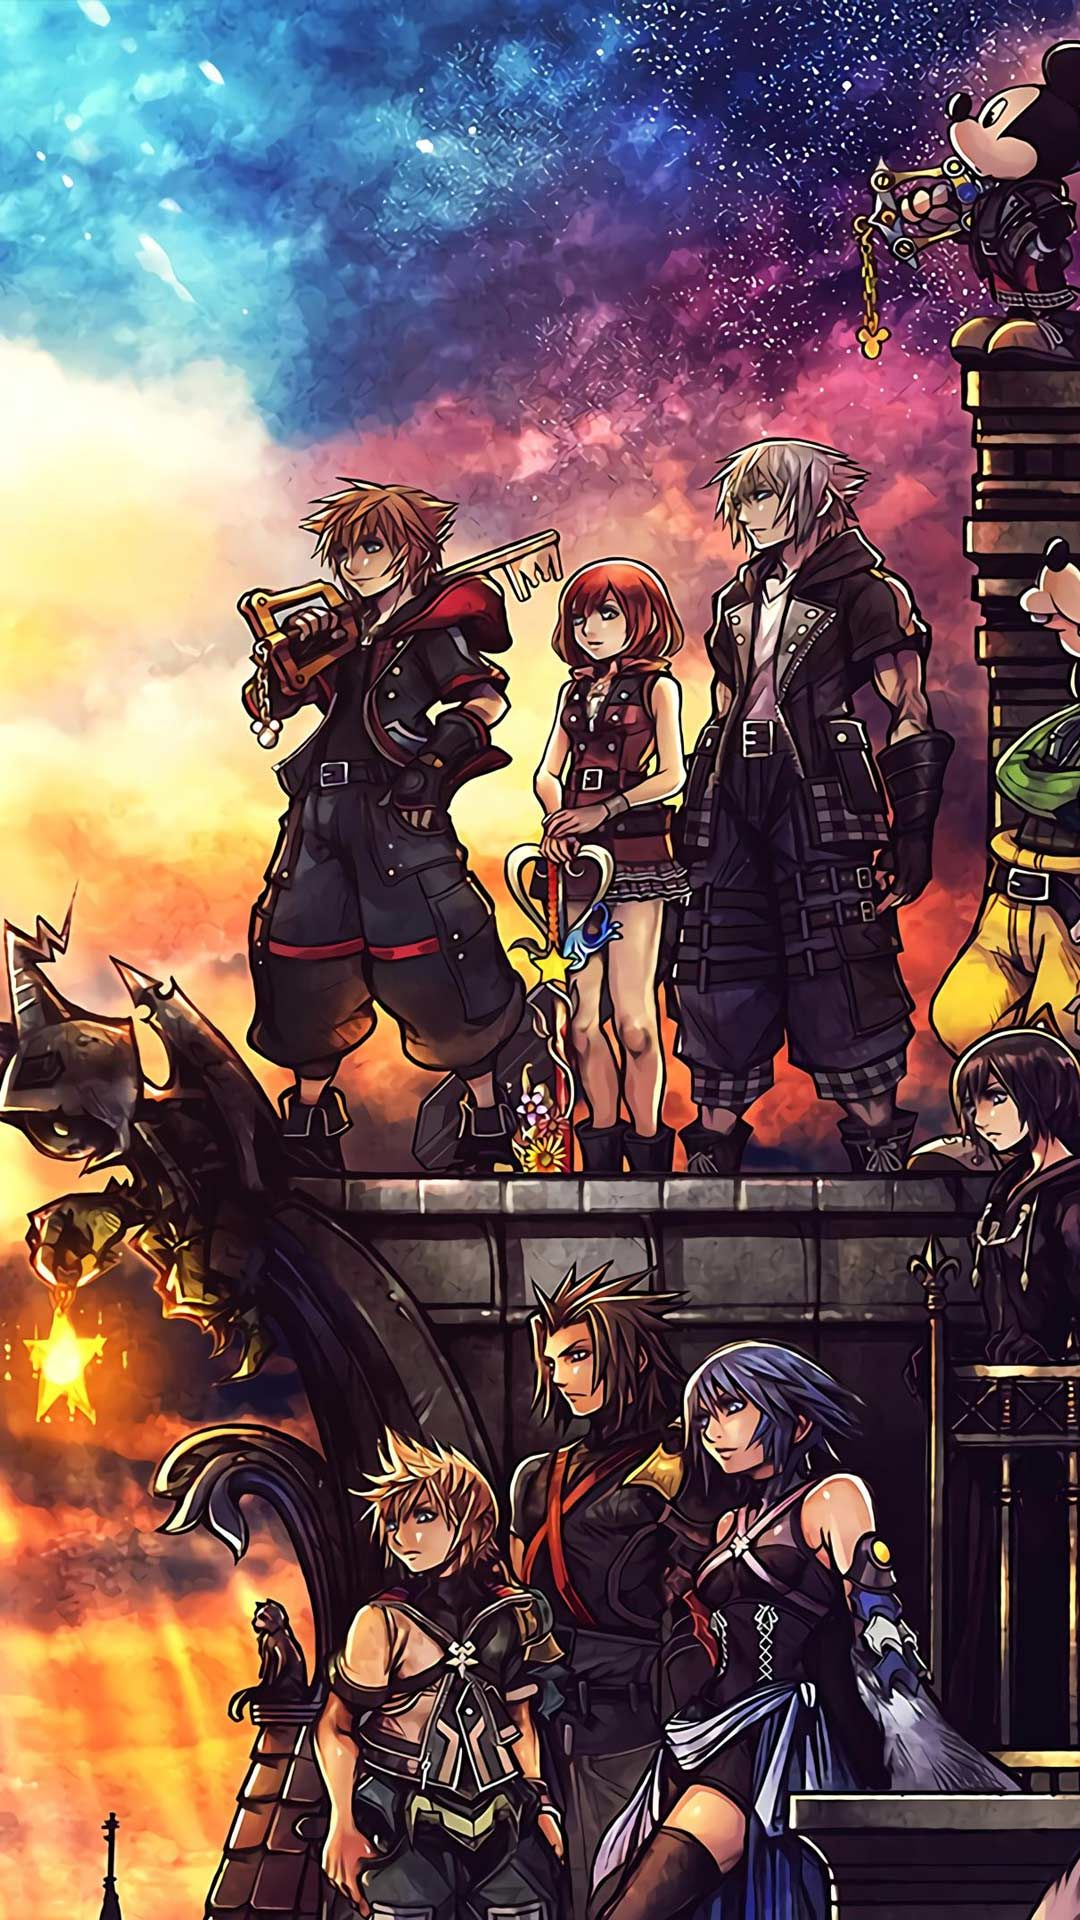 20 Kingdom Hearts 3 Phone Wallpaper Backgrounds For Free Download 2020